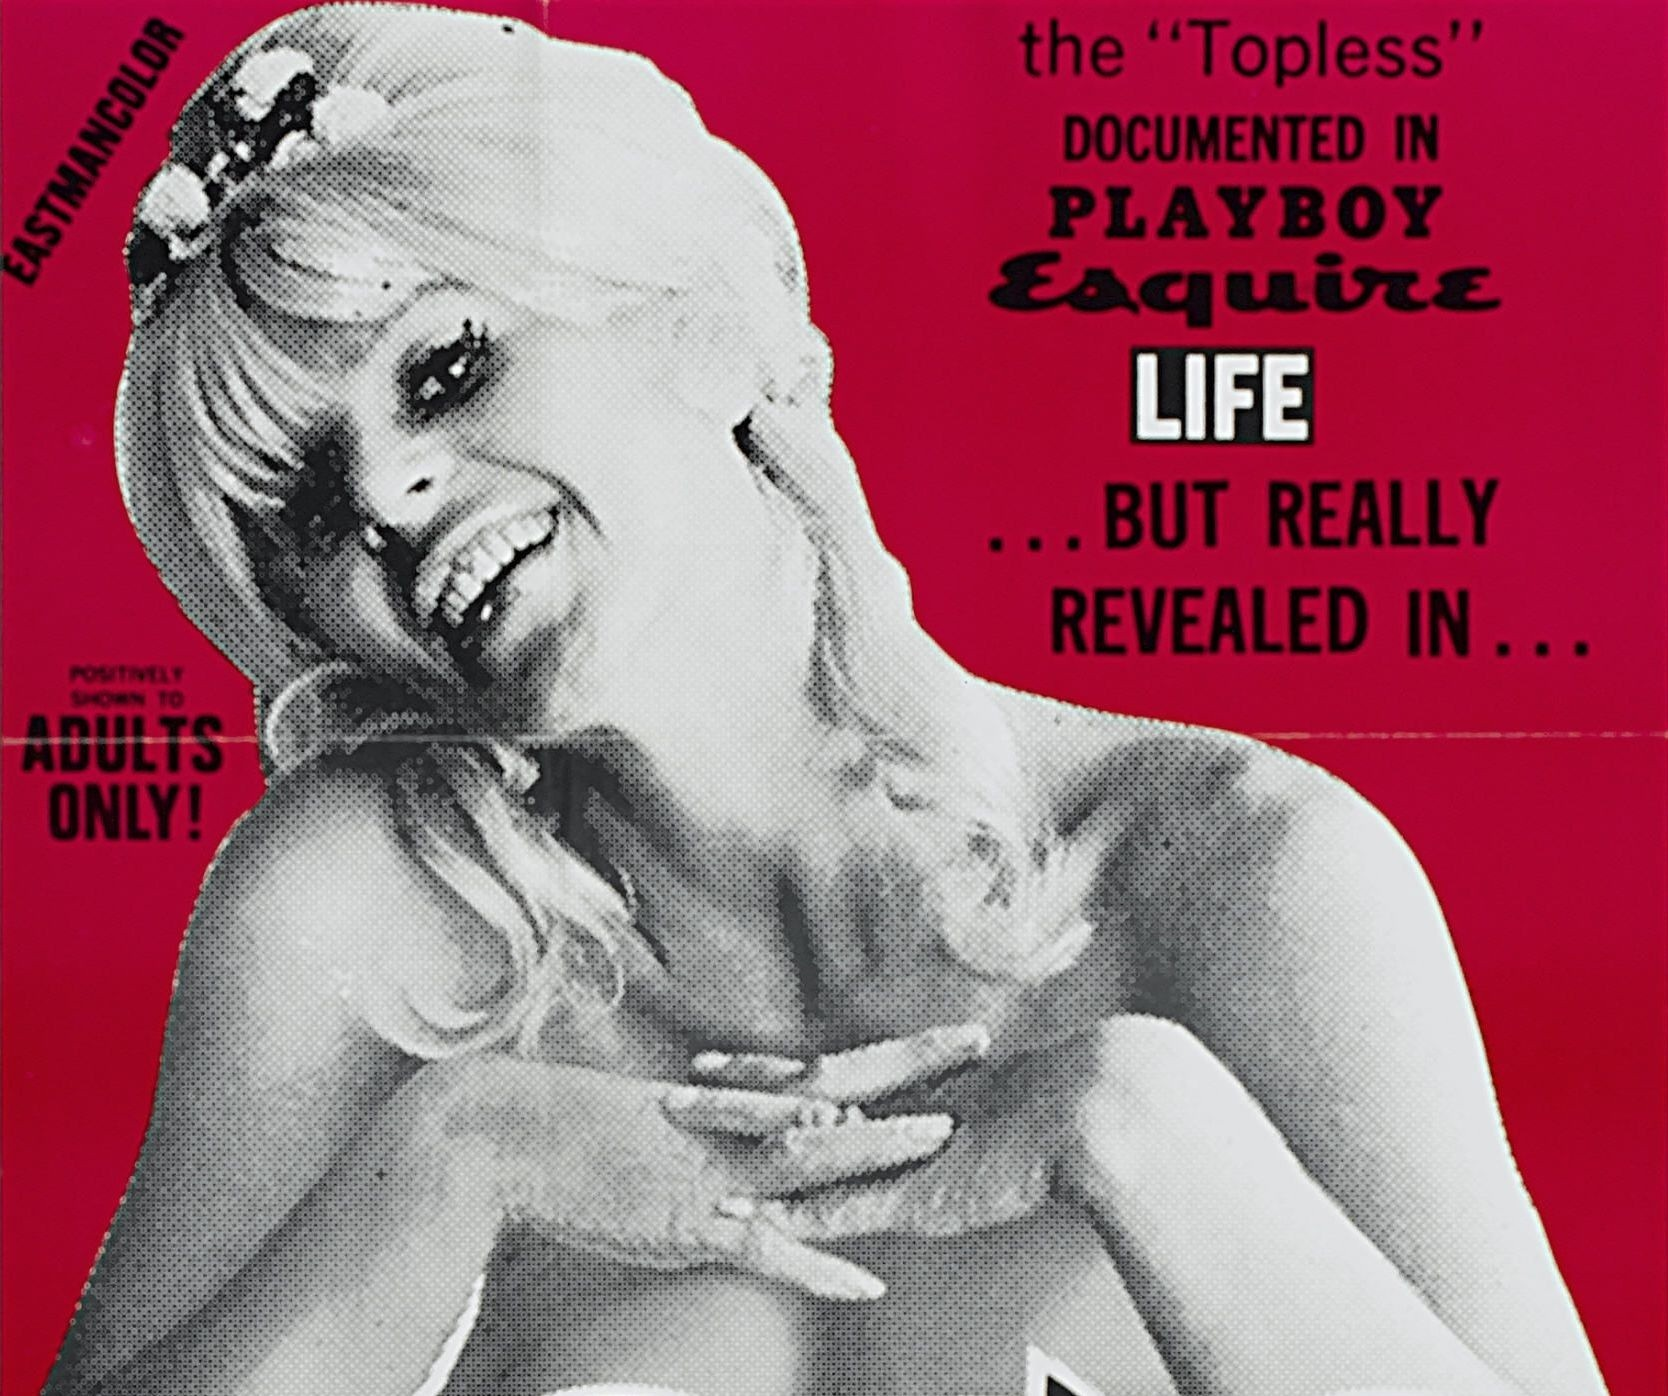 The best things in life are topless, semi naked girl with bottle poster